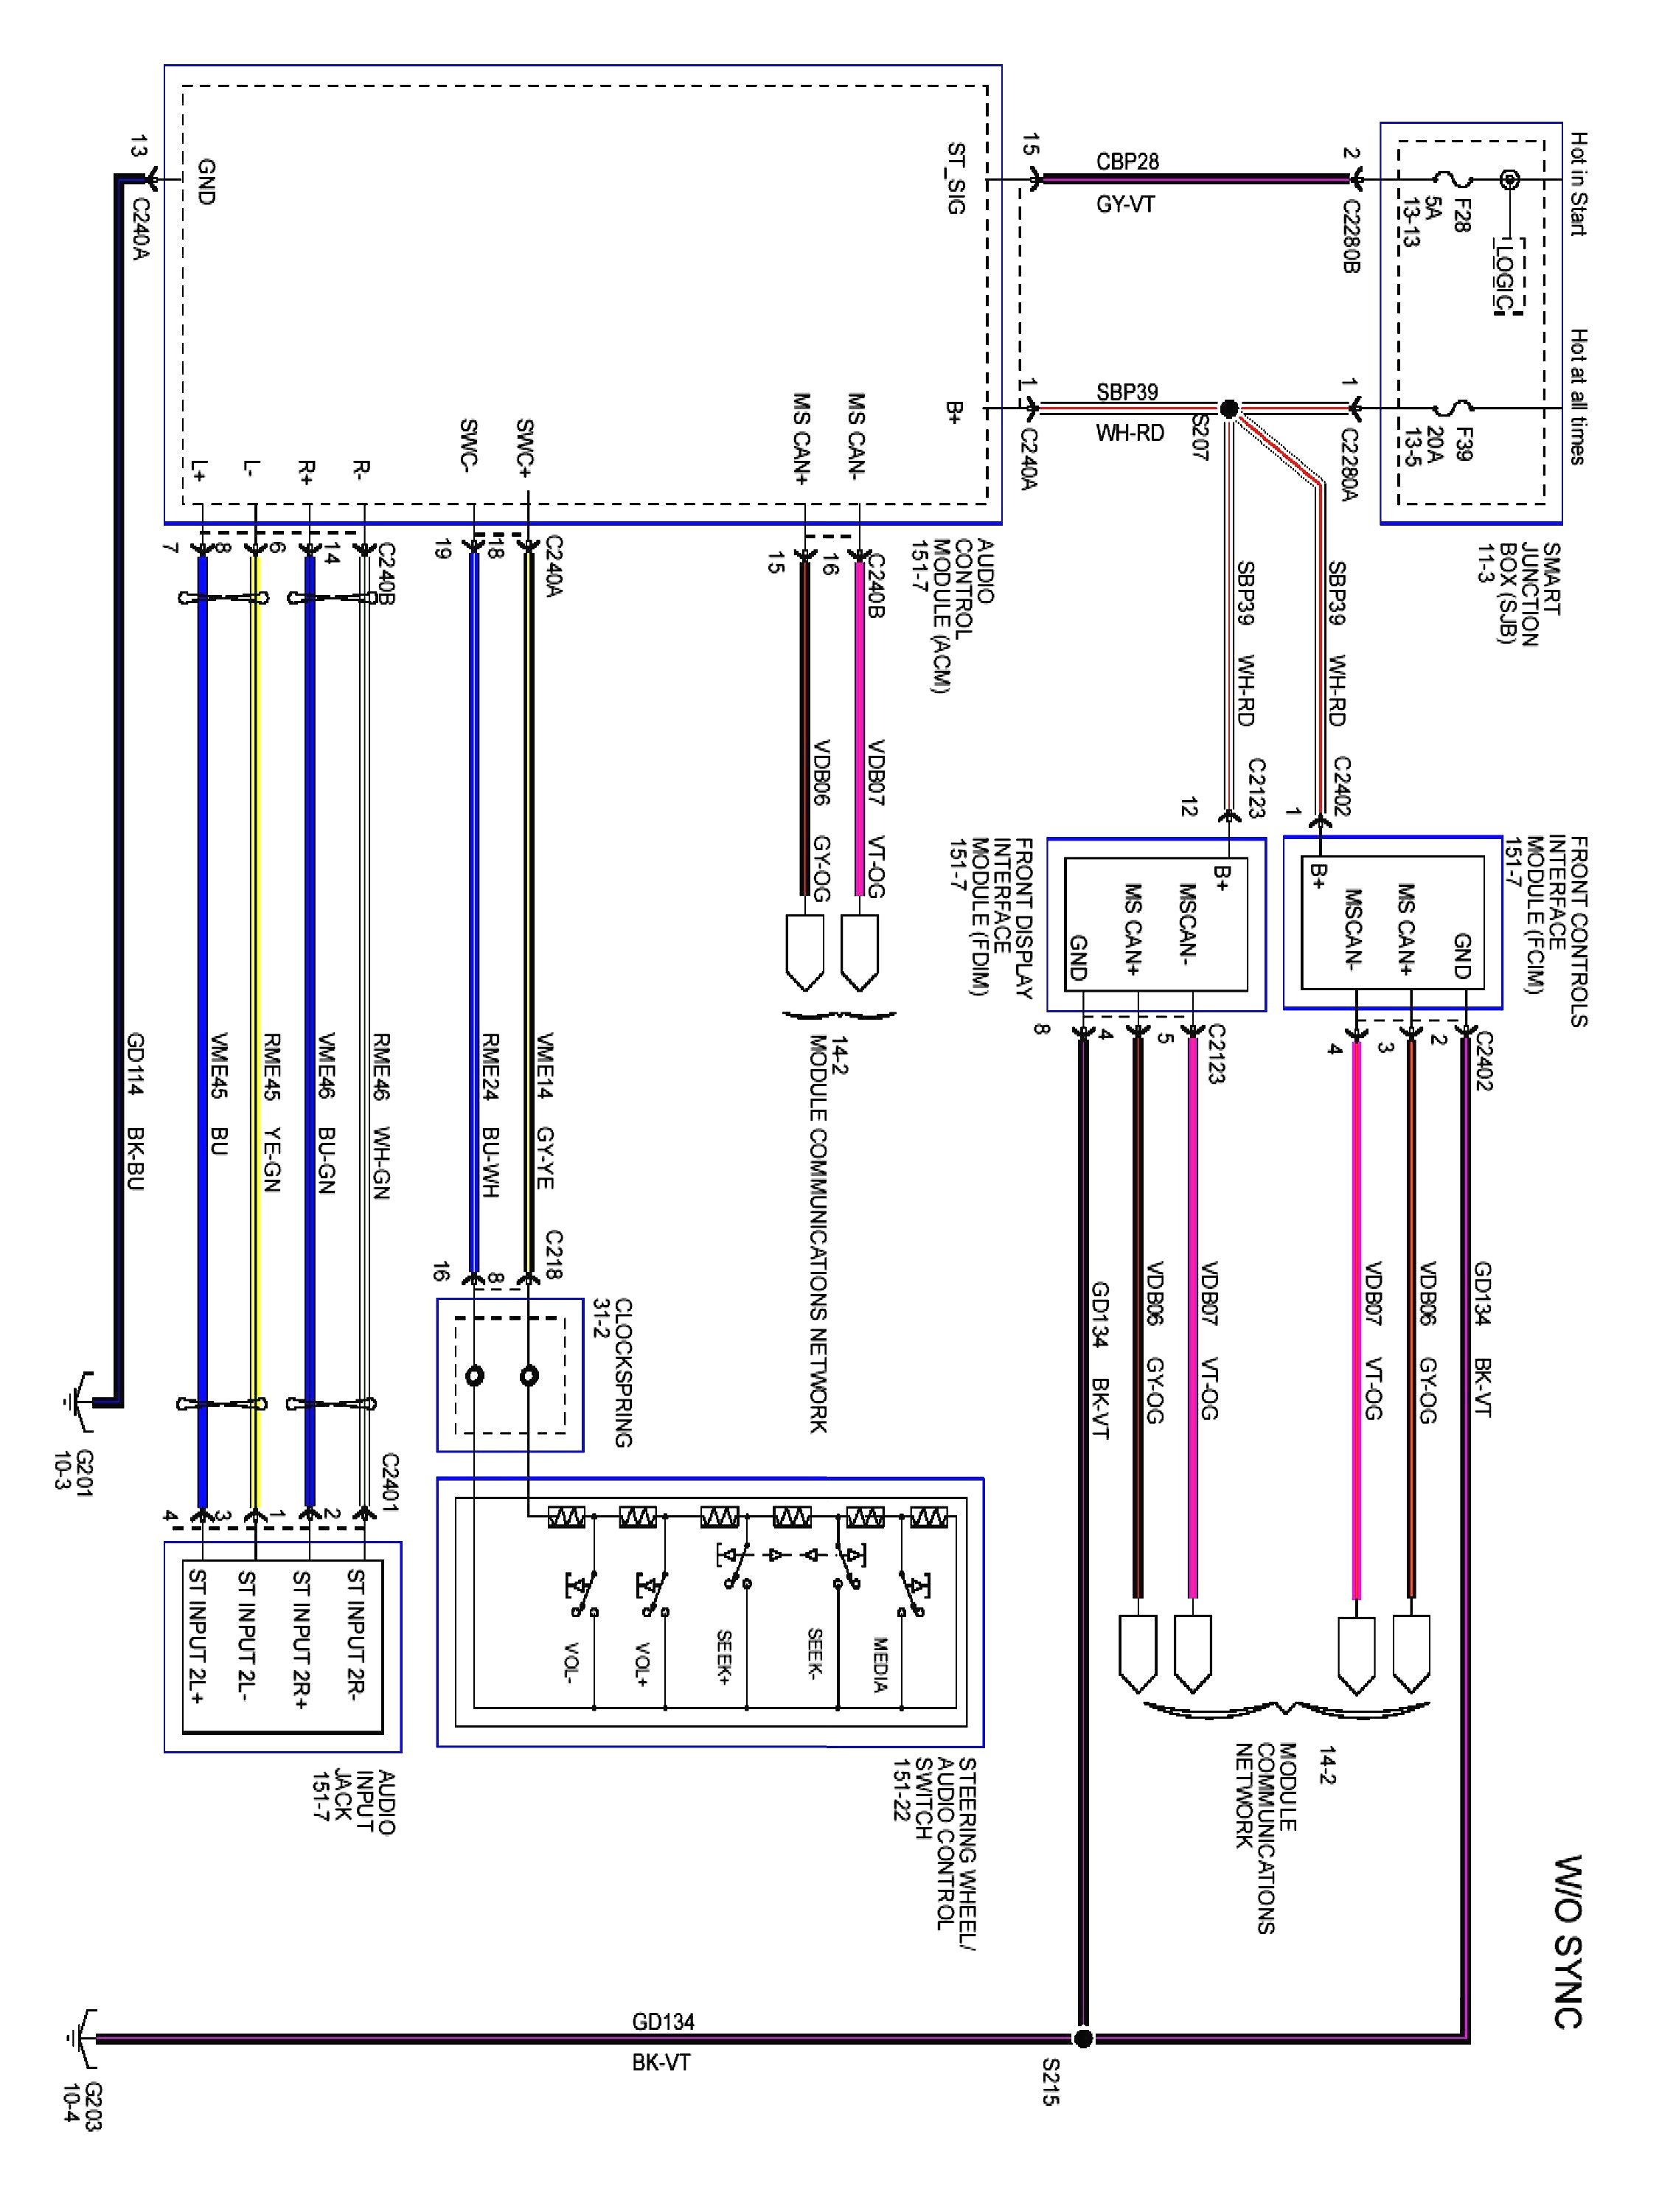 08 ford focus wiring harness diagram wiring diagram mega 2010 focus wiring diagram 2010 focus wiring diagram